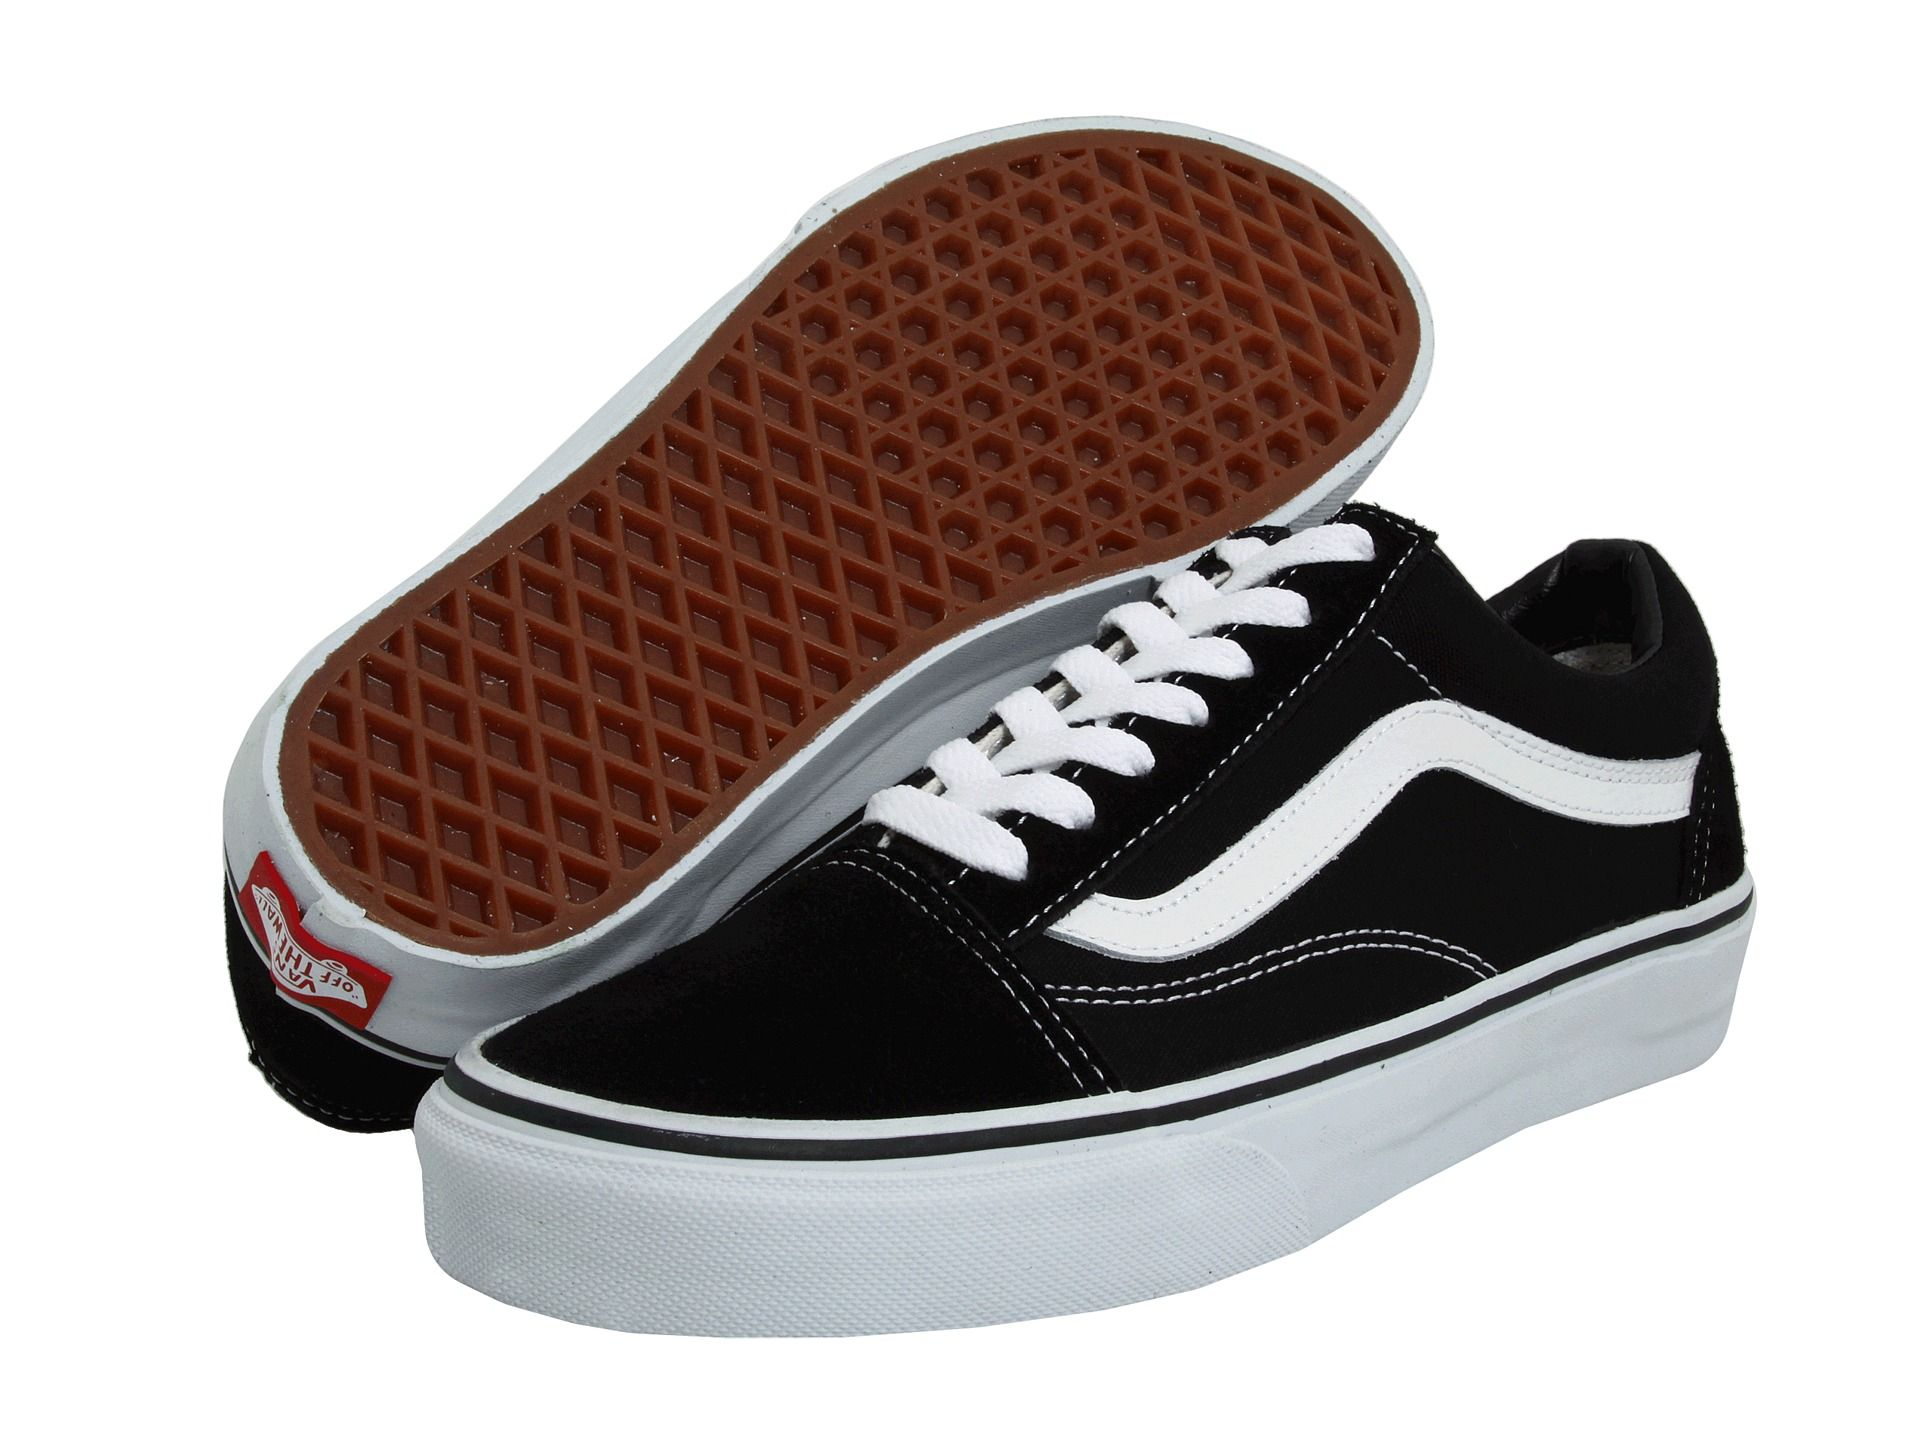 pretty nice 184e8 4afd9 Vans Old Skool™ Core Classics Black - Zappos.com Free Shipping BOTH Ways